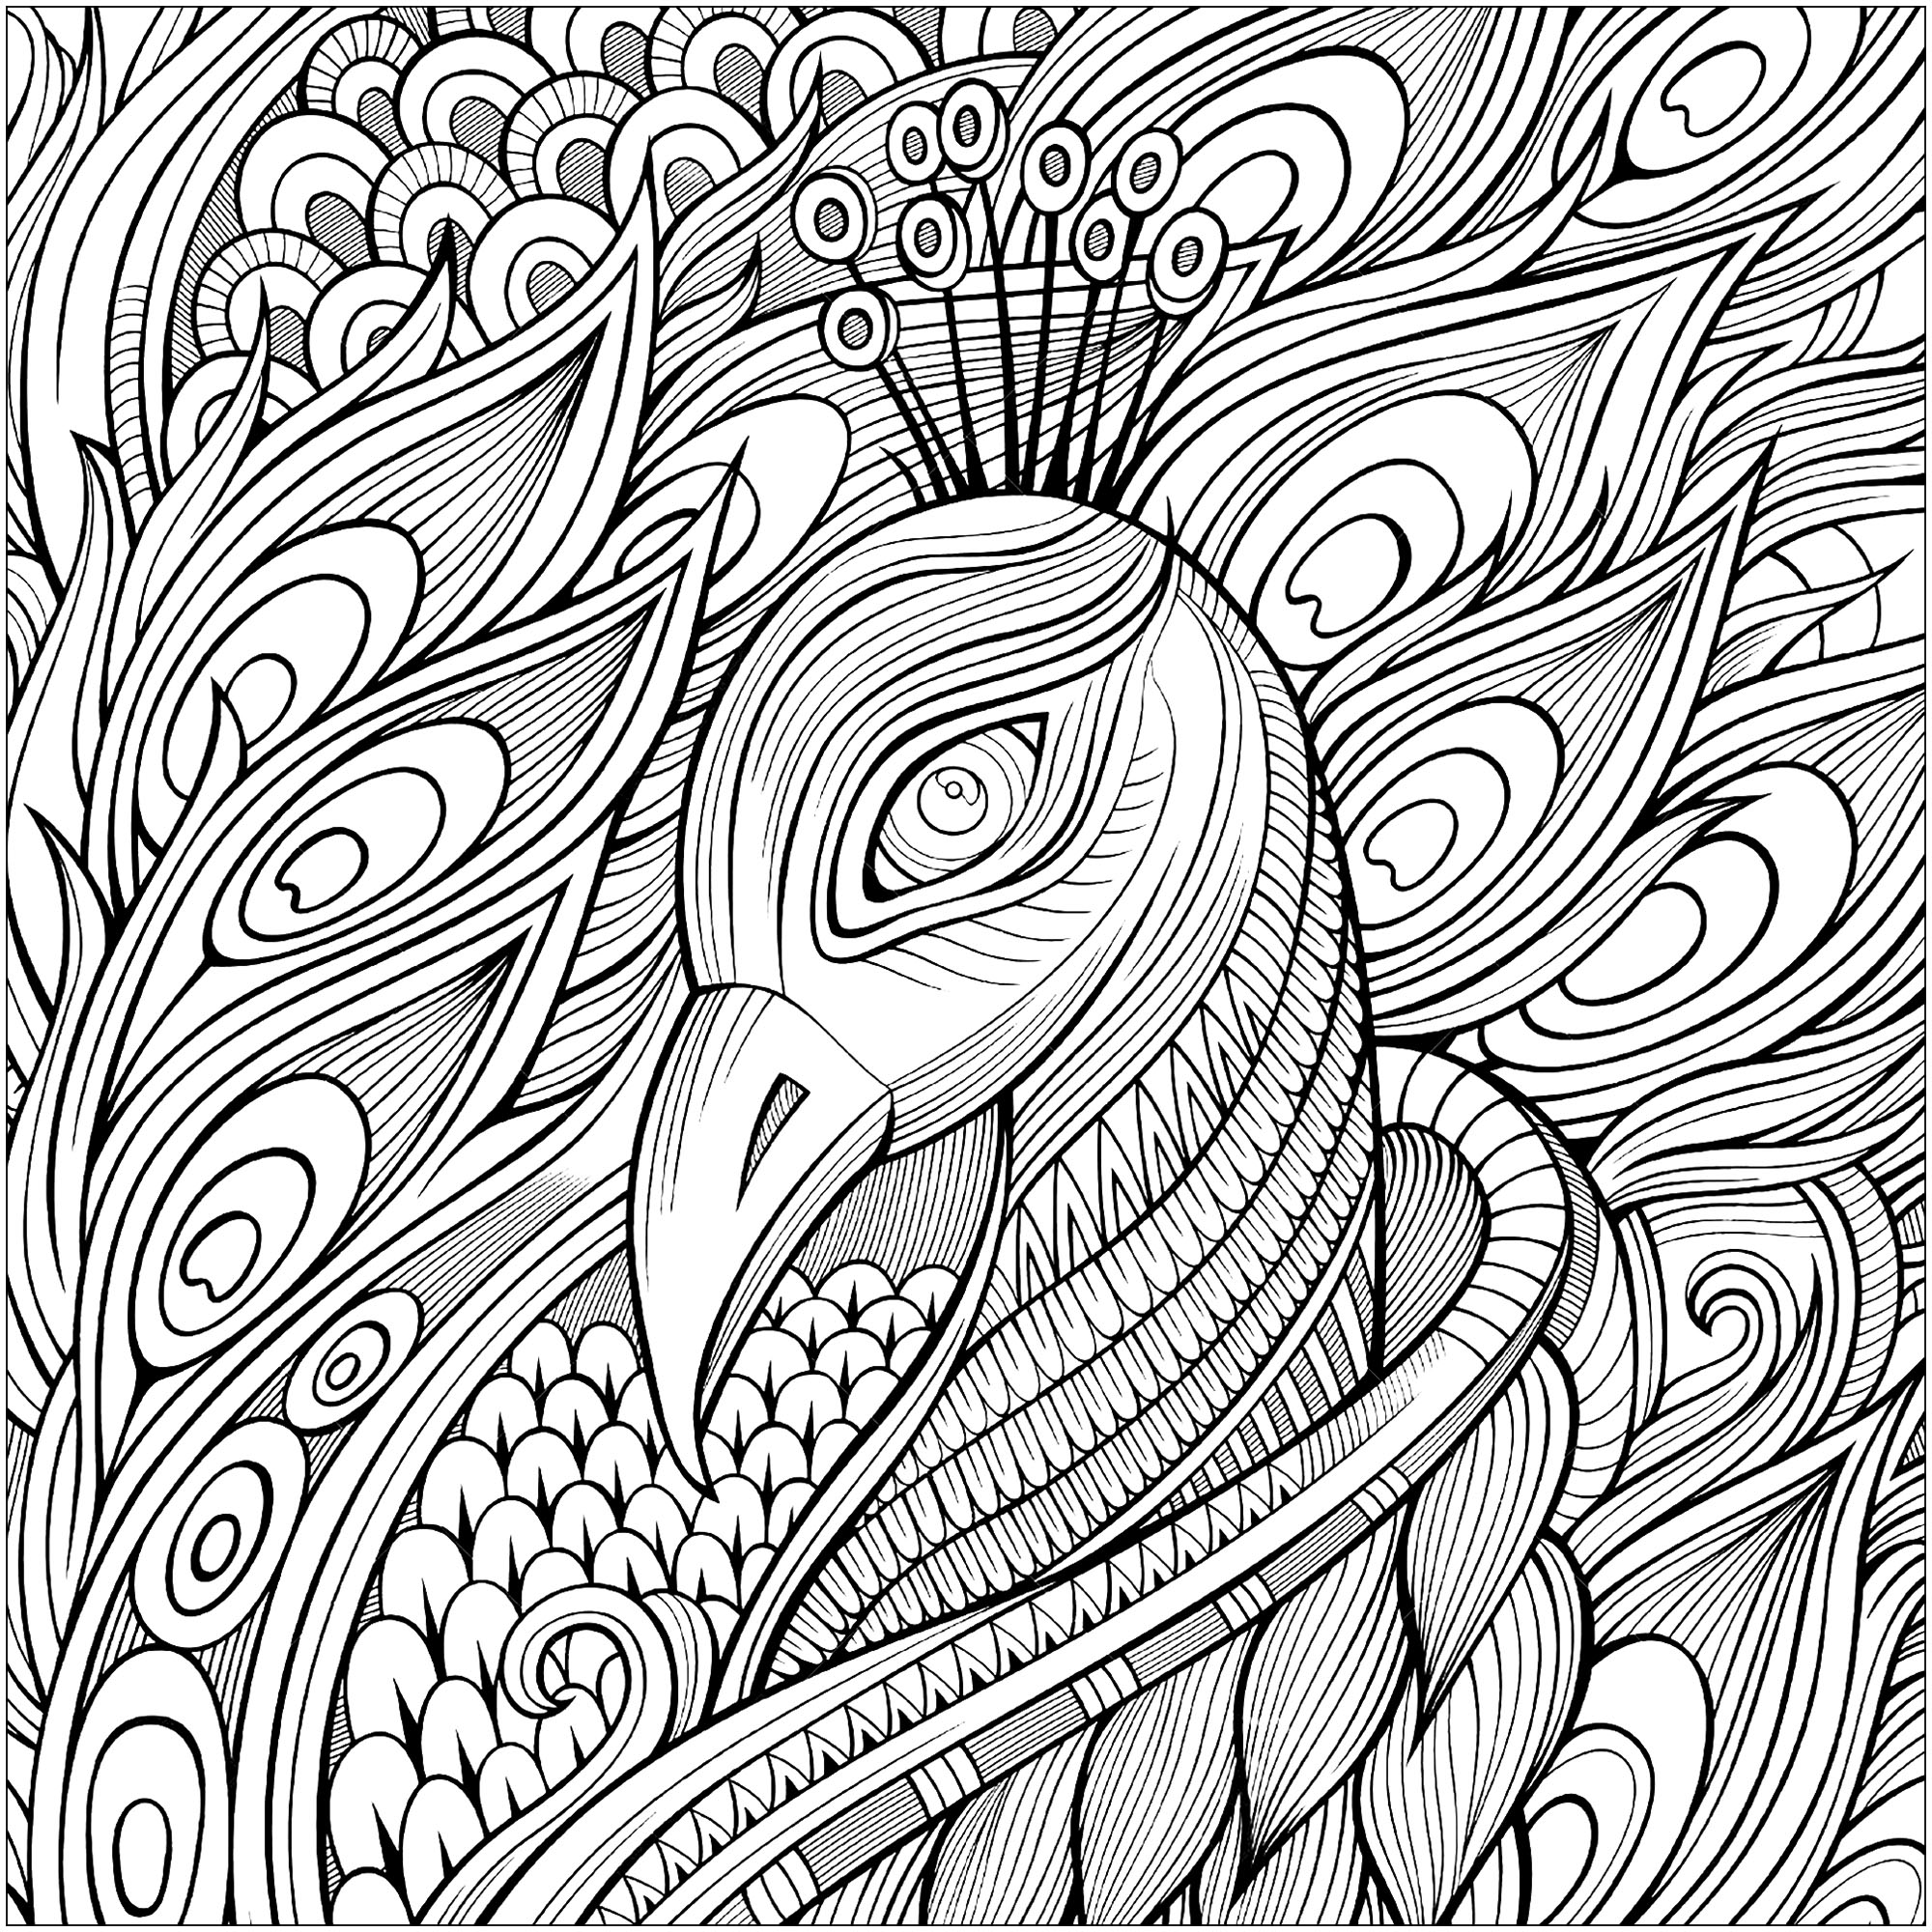 coloring peacock color page a simple drawing of male peacock coloring page kids play color peacock page coloring